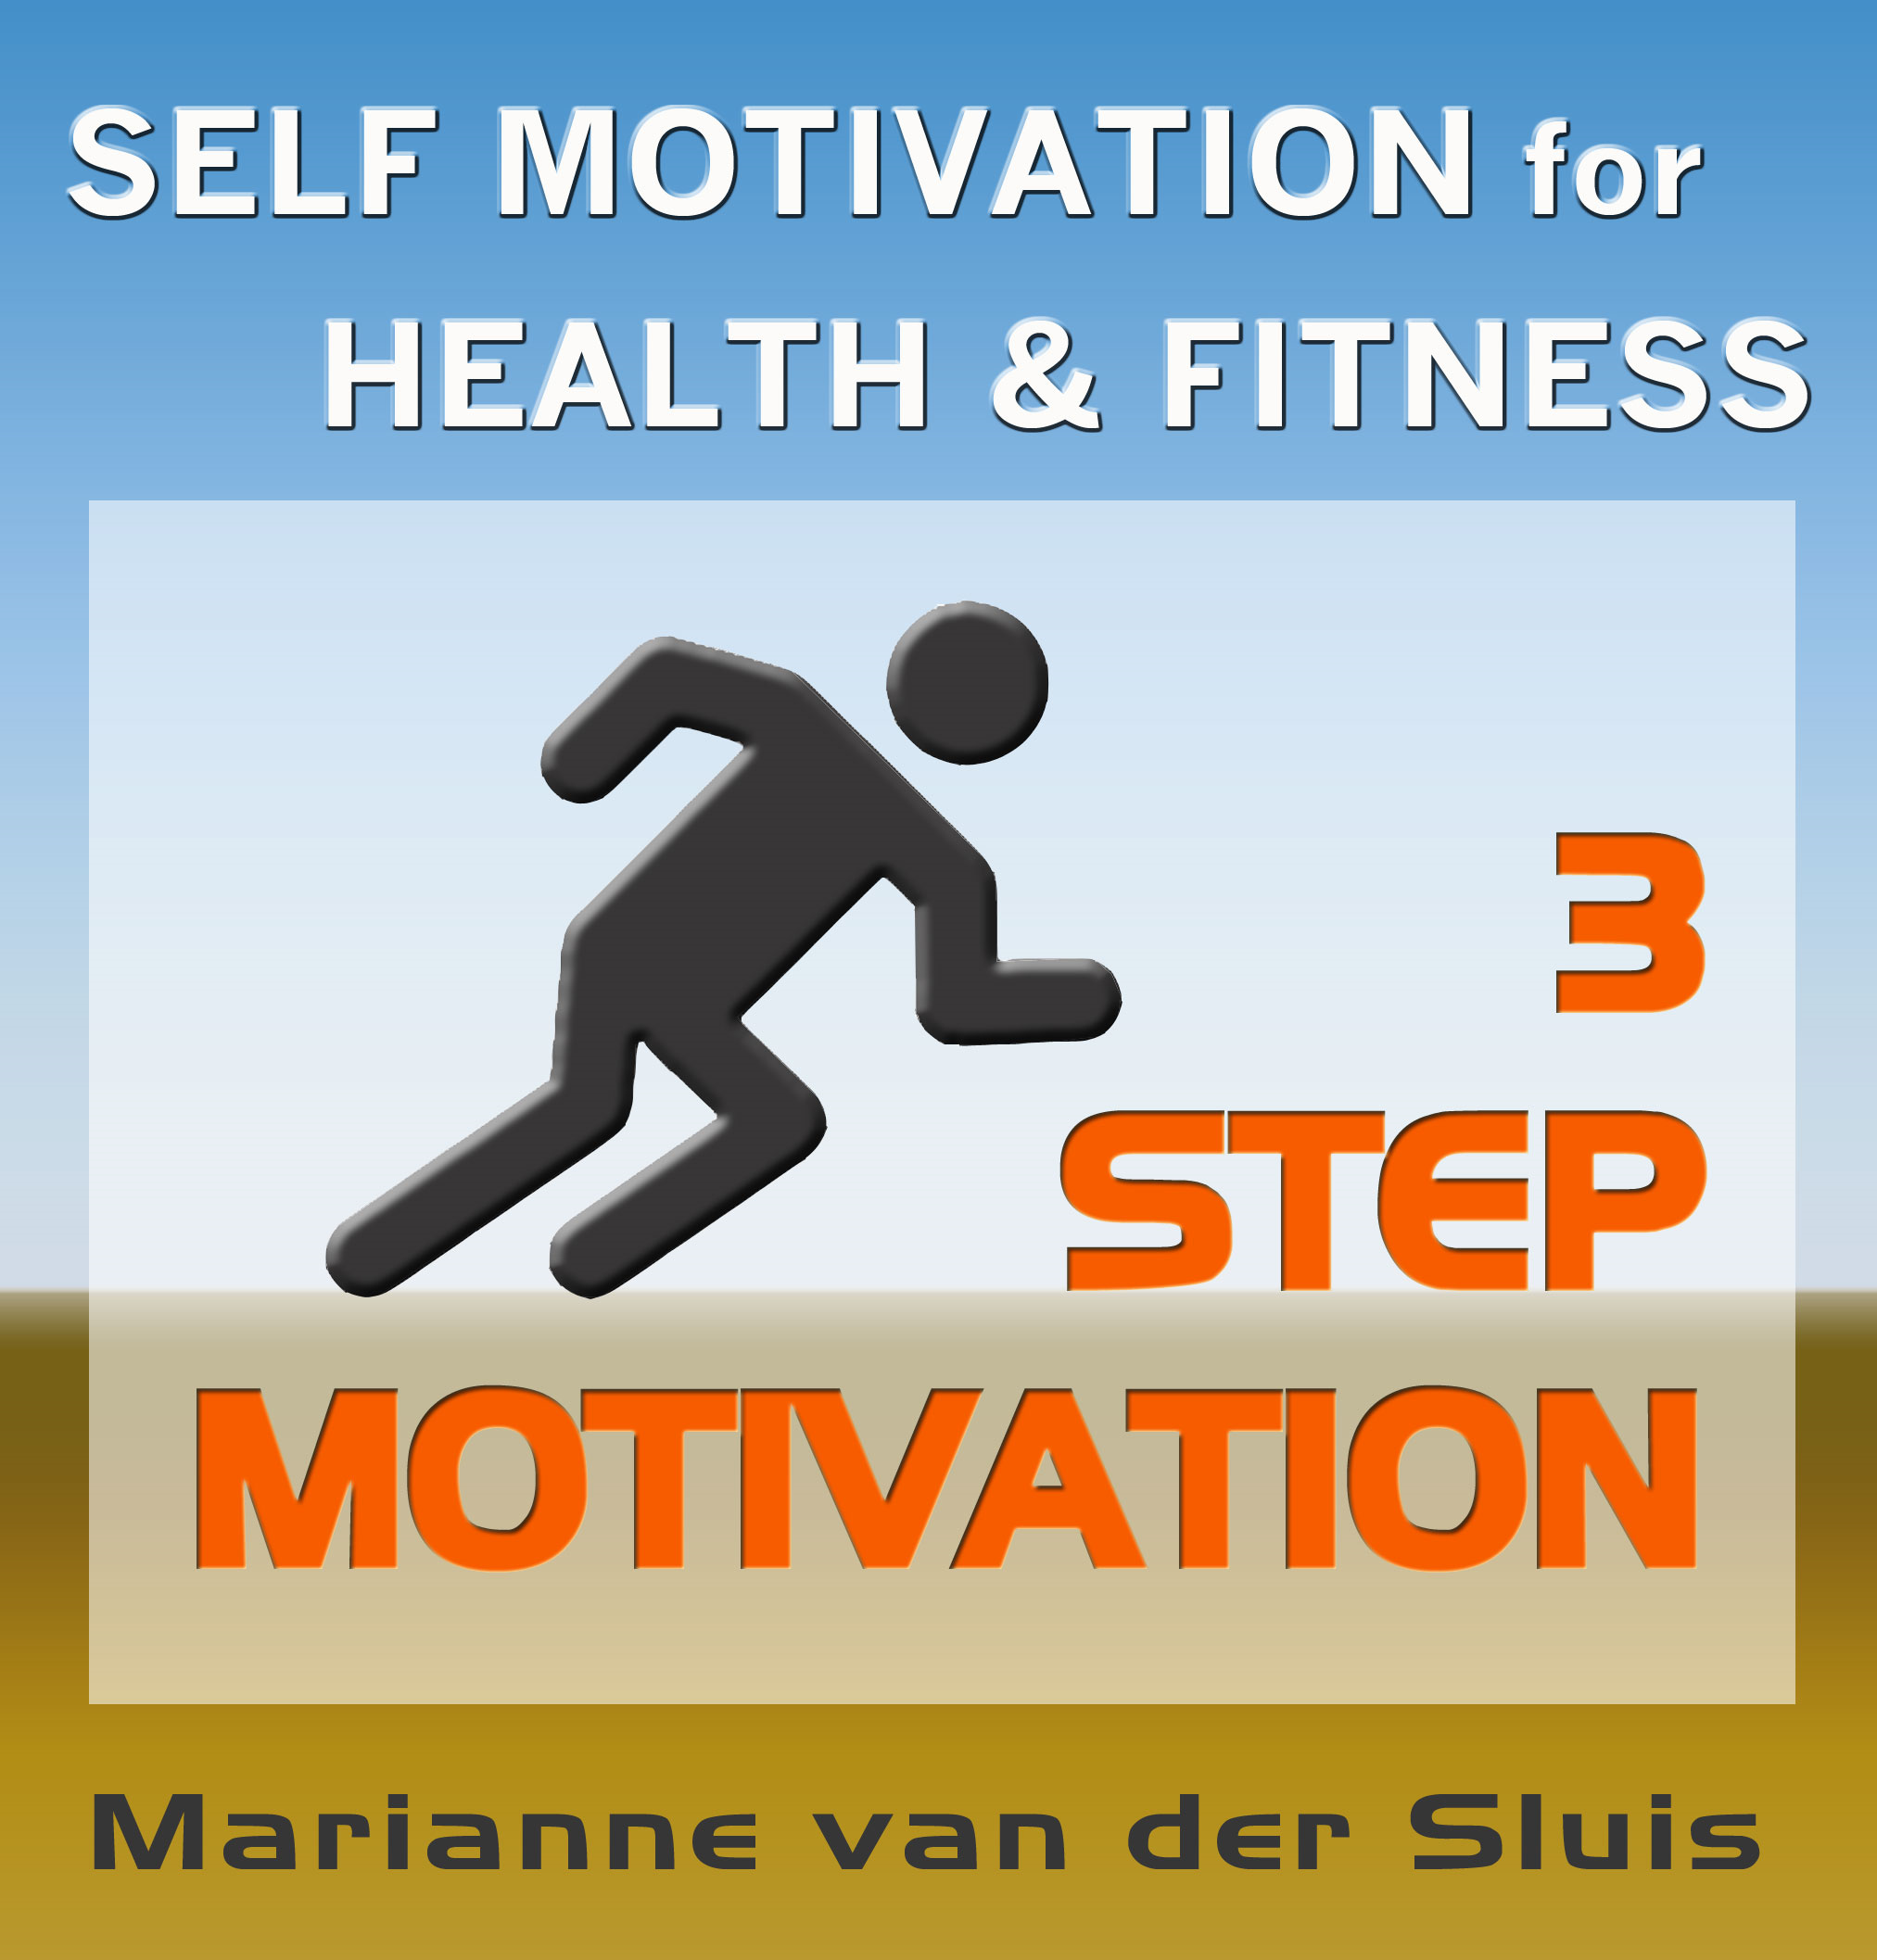 3 STEP MOTIVATION